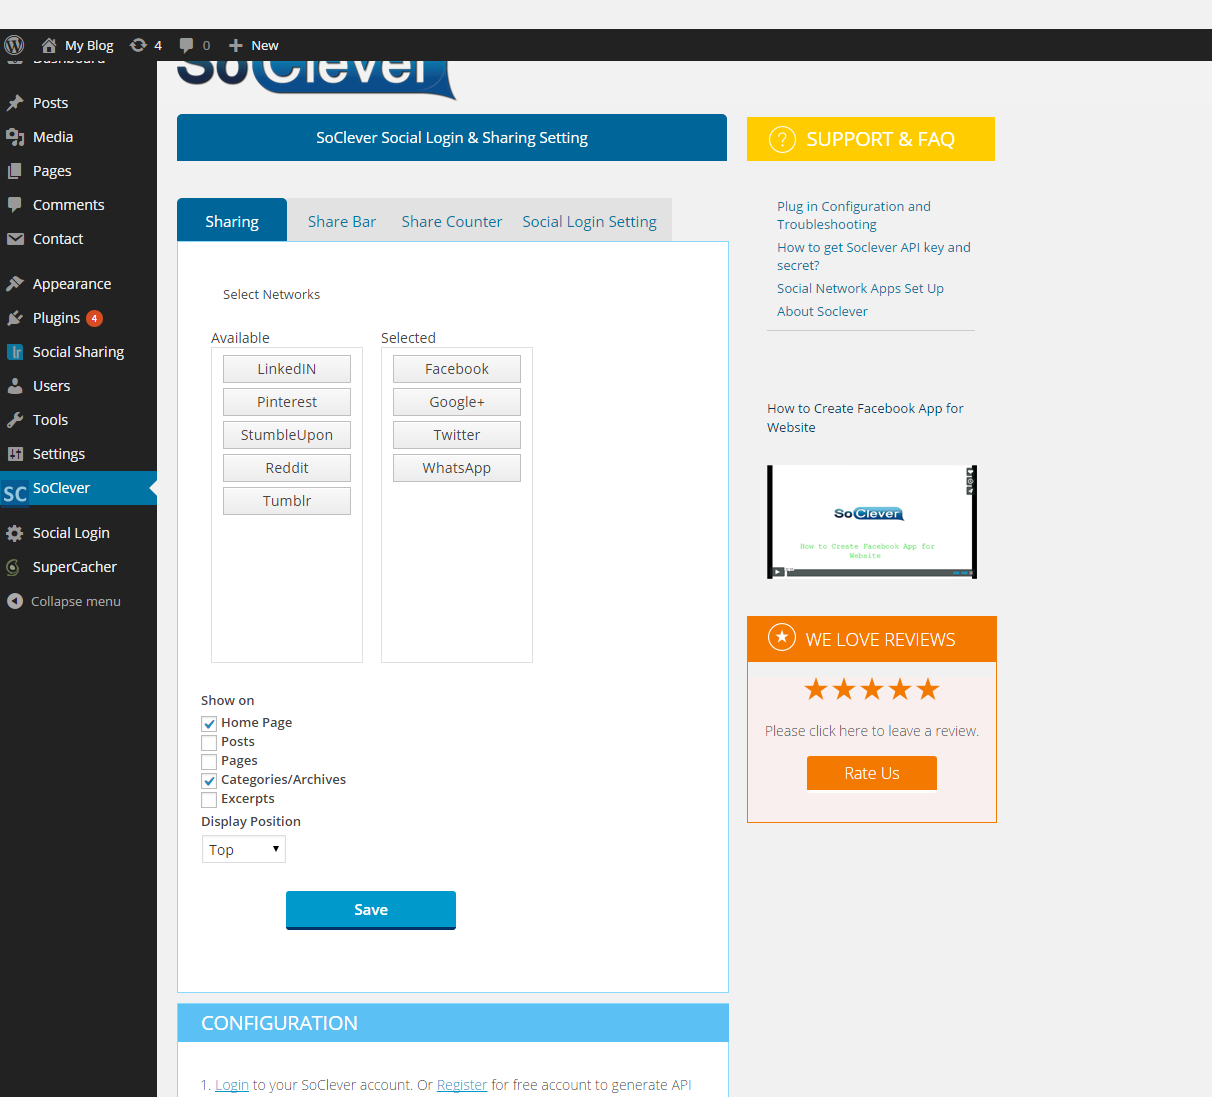 social-login-sharing-buttons-with-analytics-by-soclever screenshot 3